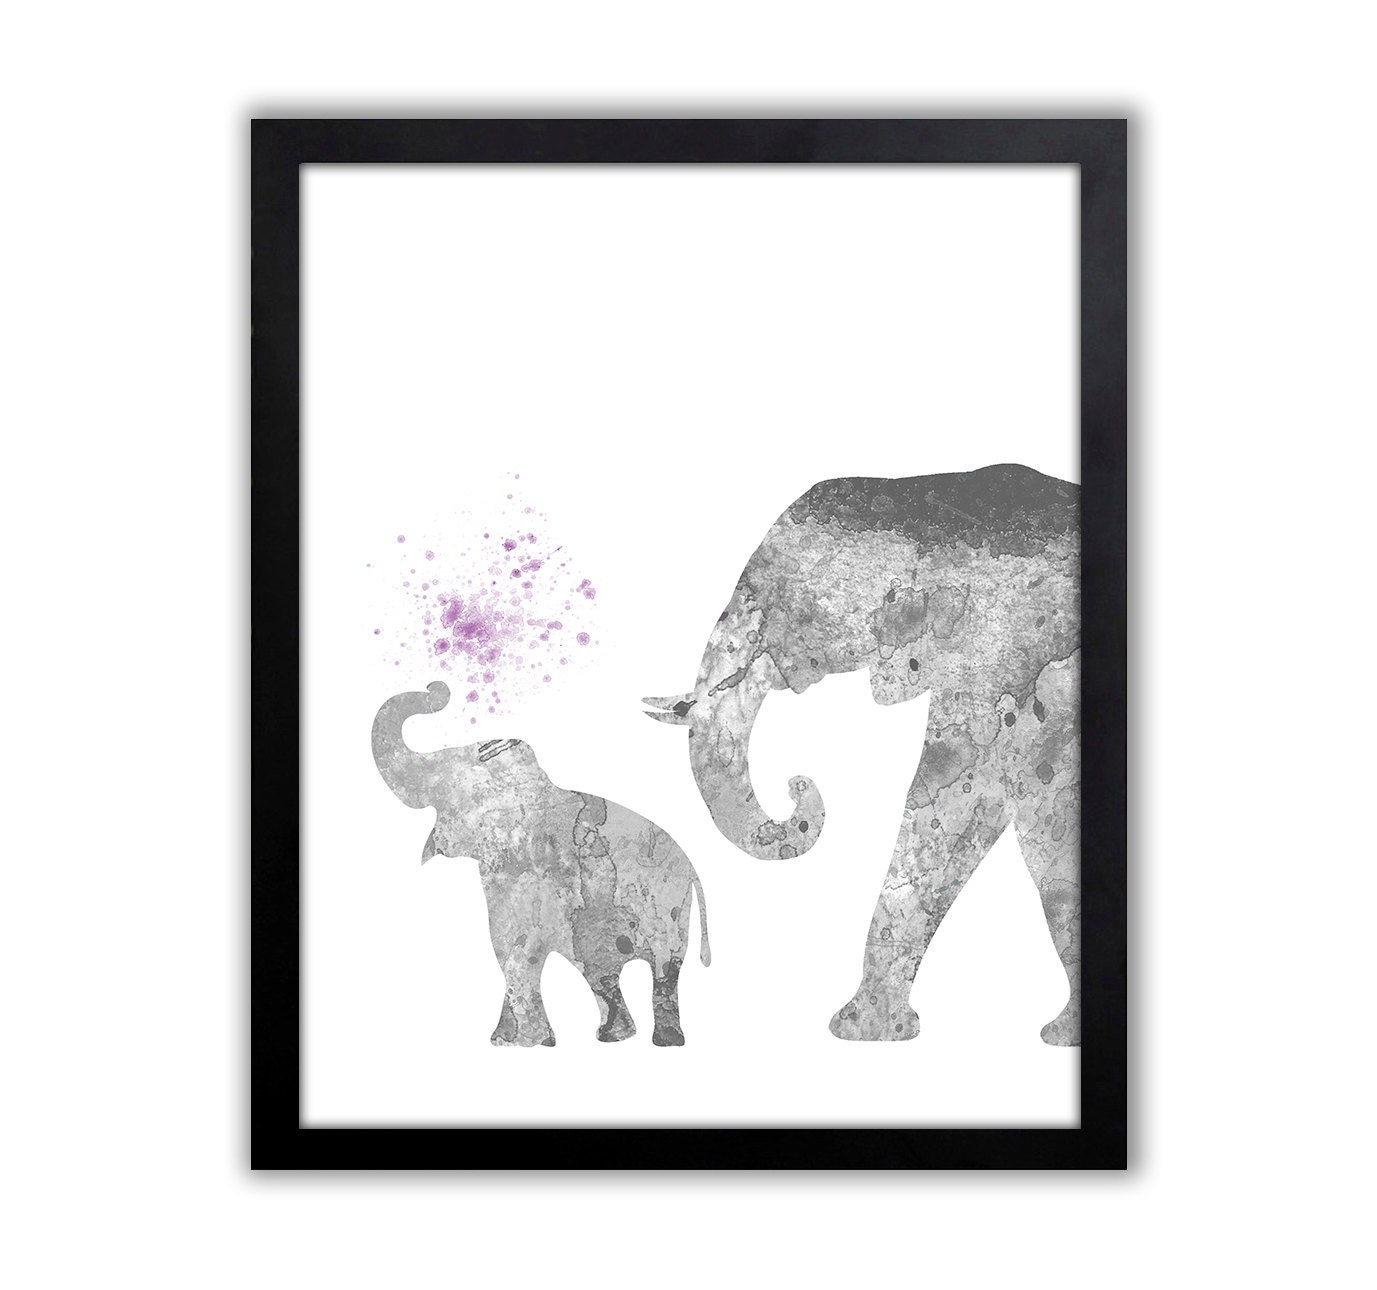 Elephant nursery wall art print mom baby dad by rizzleandrugee -  Zoom